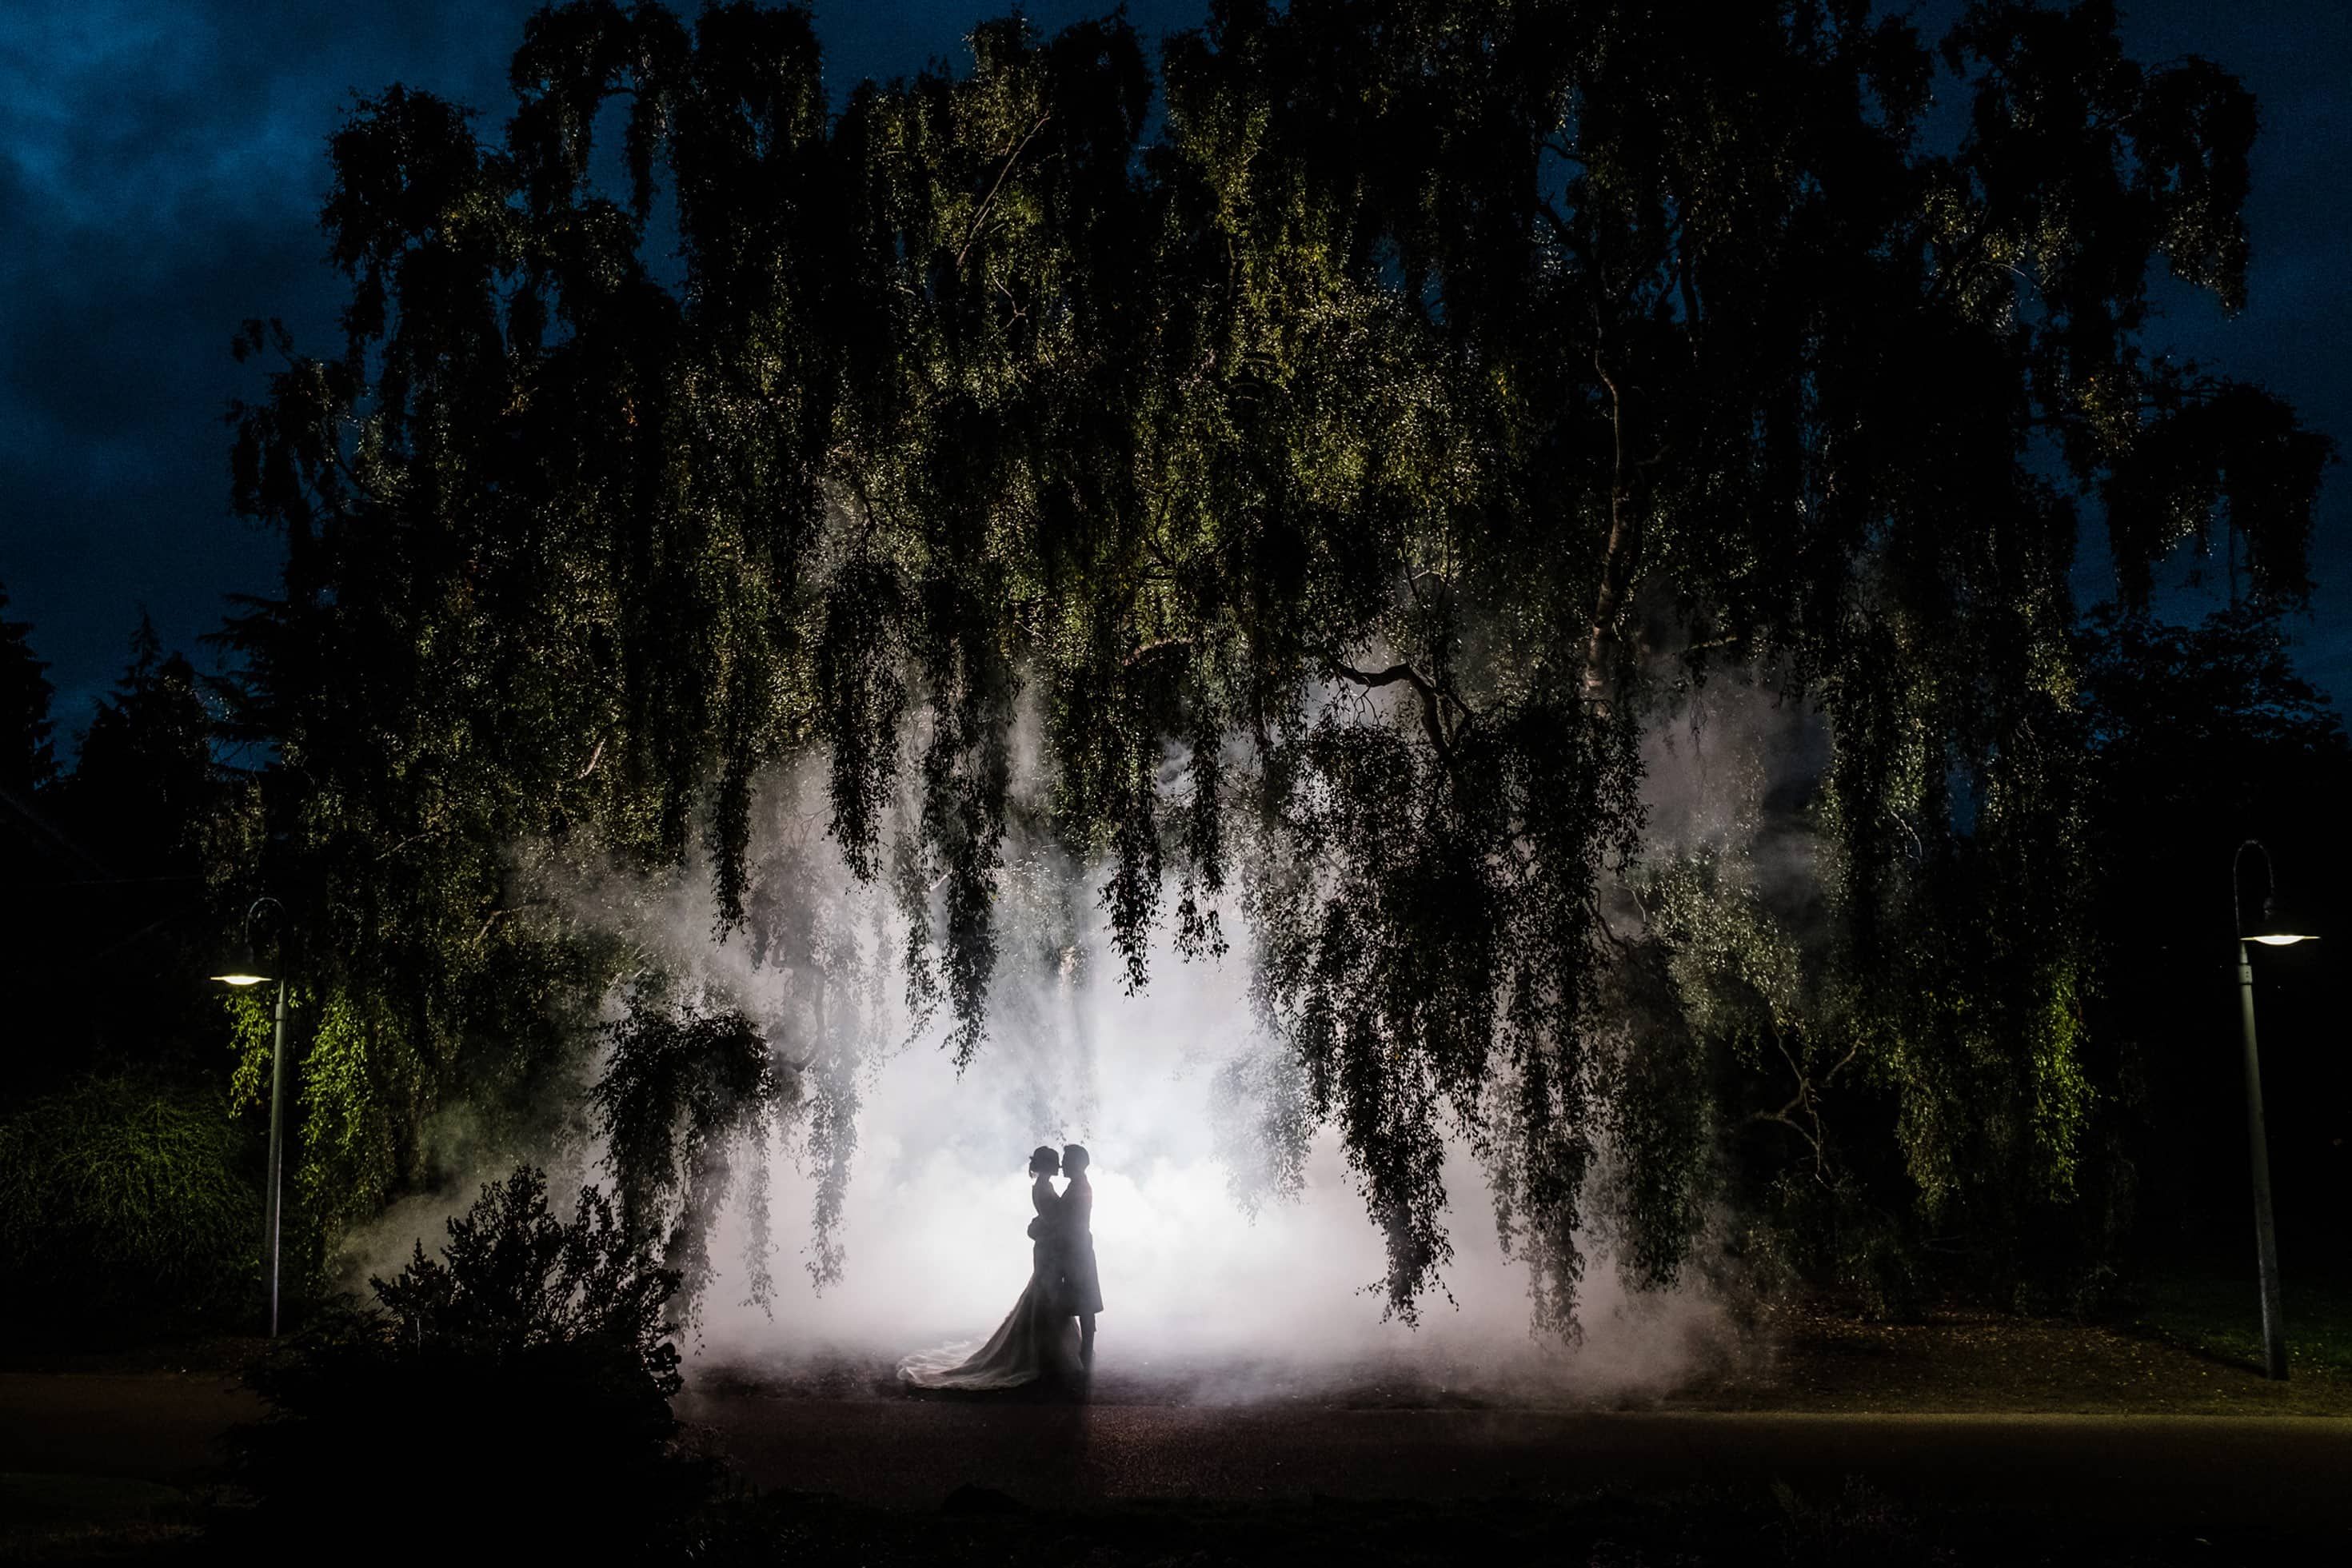 Edinburgh botanical gardens wedding photography ideas with smoke grenades